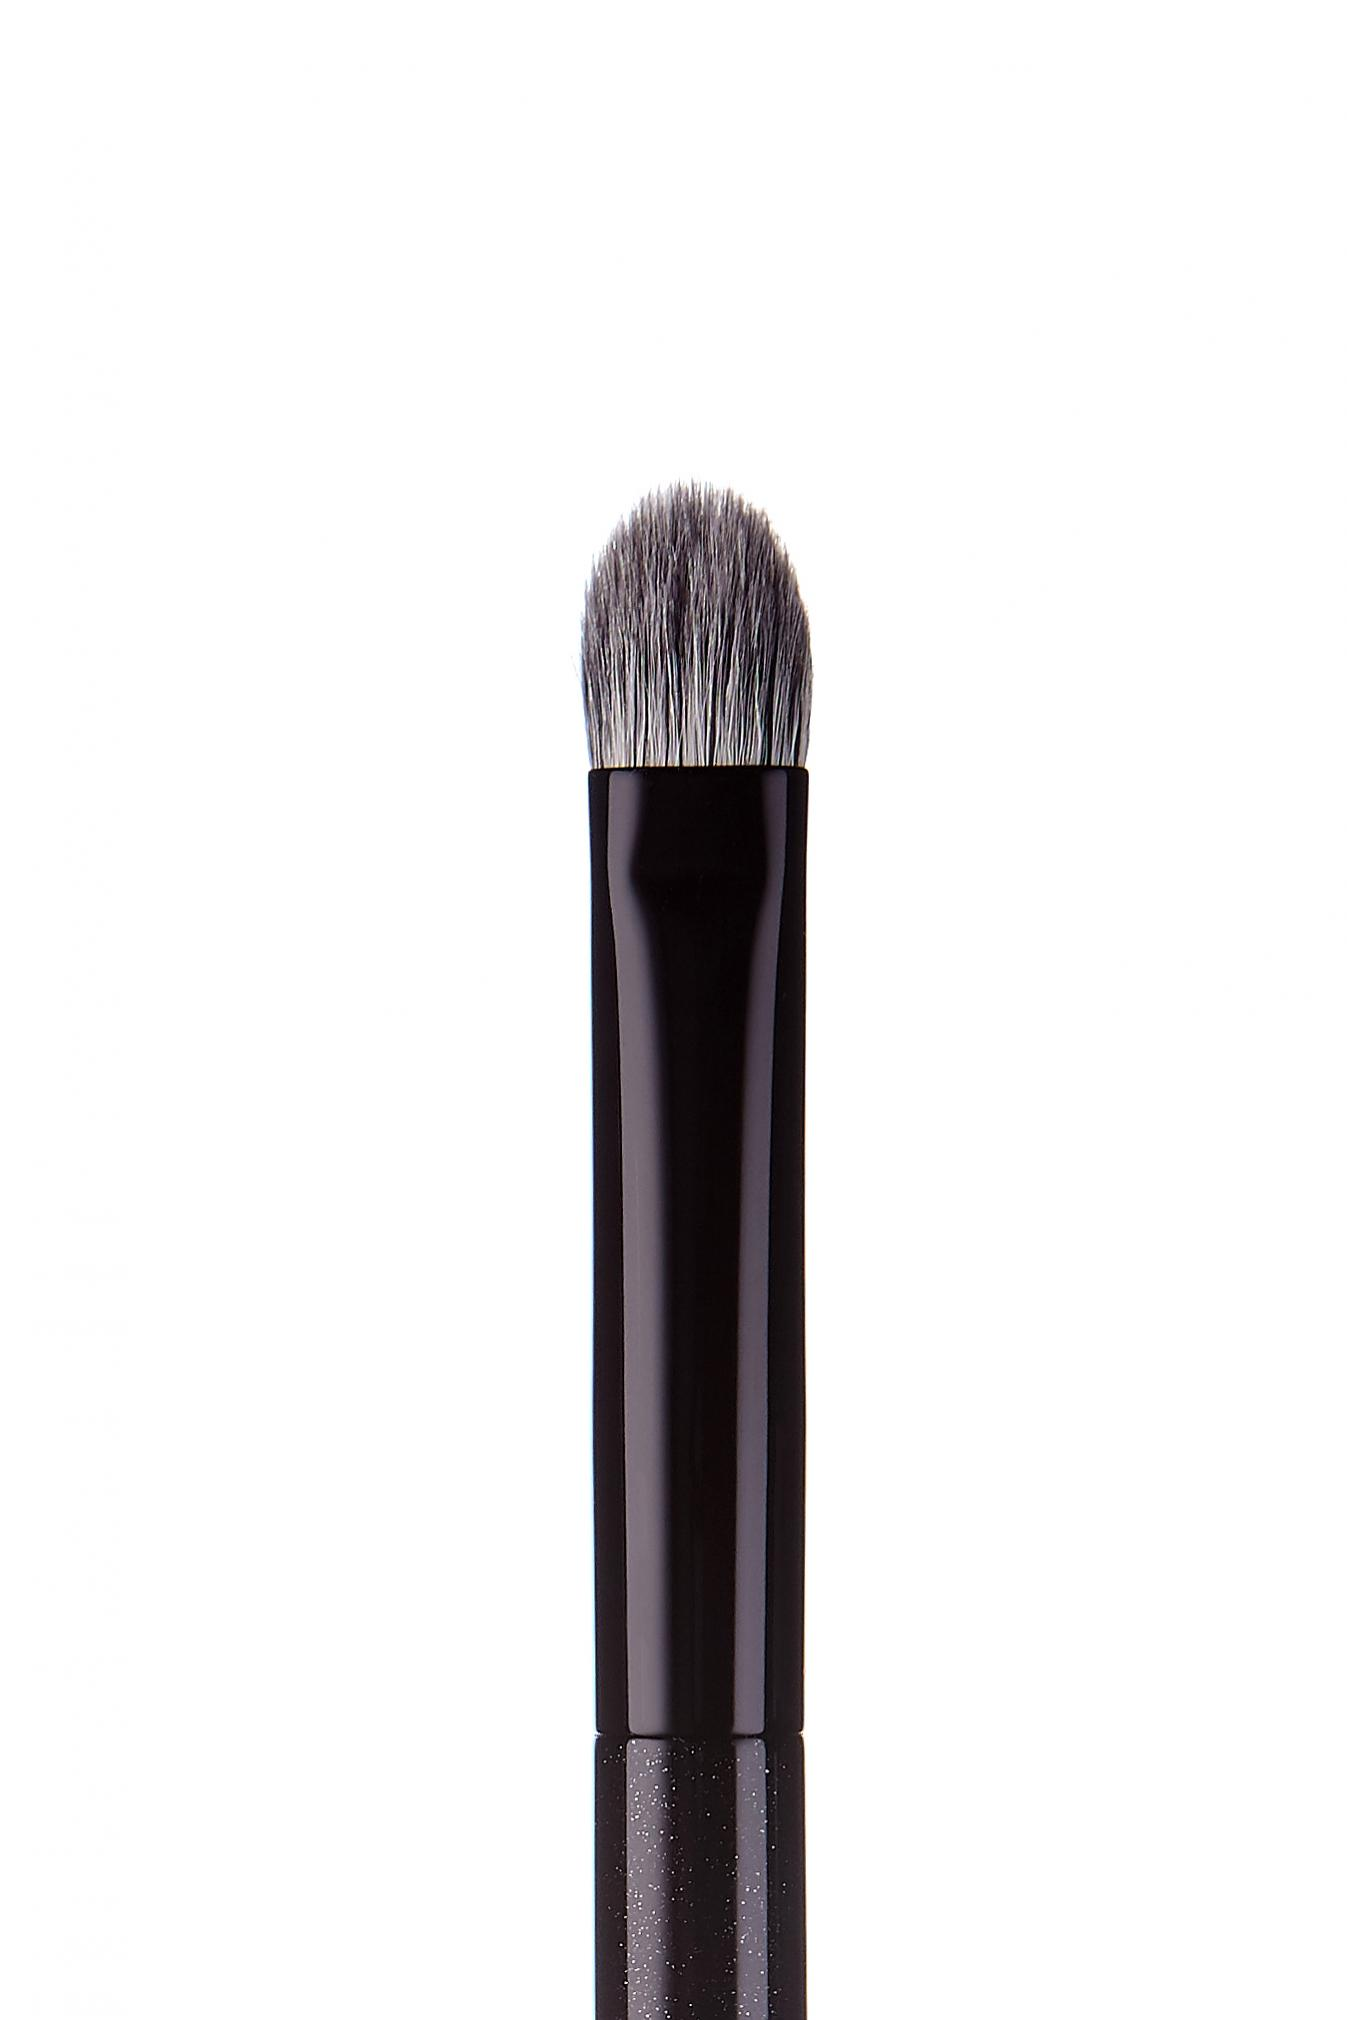 Annbeauty T7 hair Upper & Lower Eyelid Brush - Limited Edition